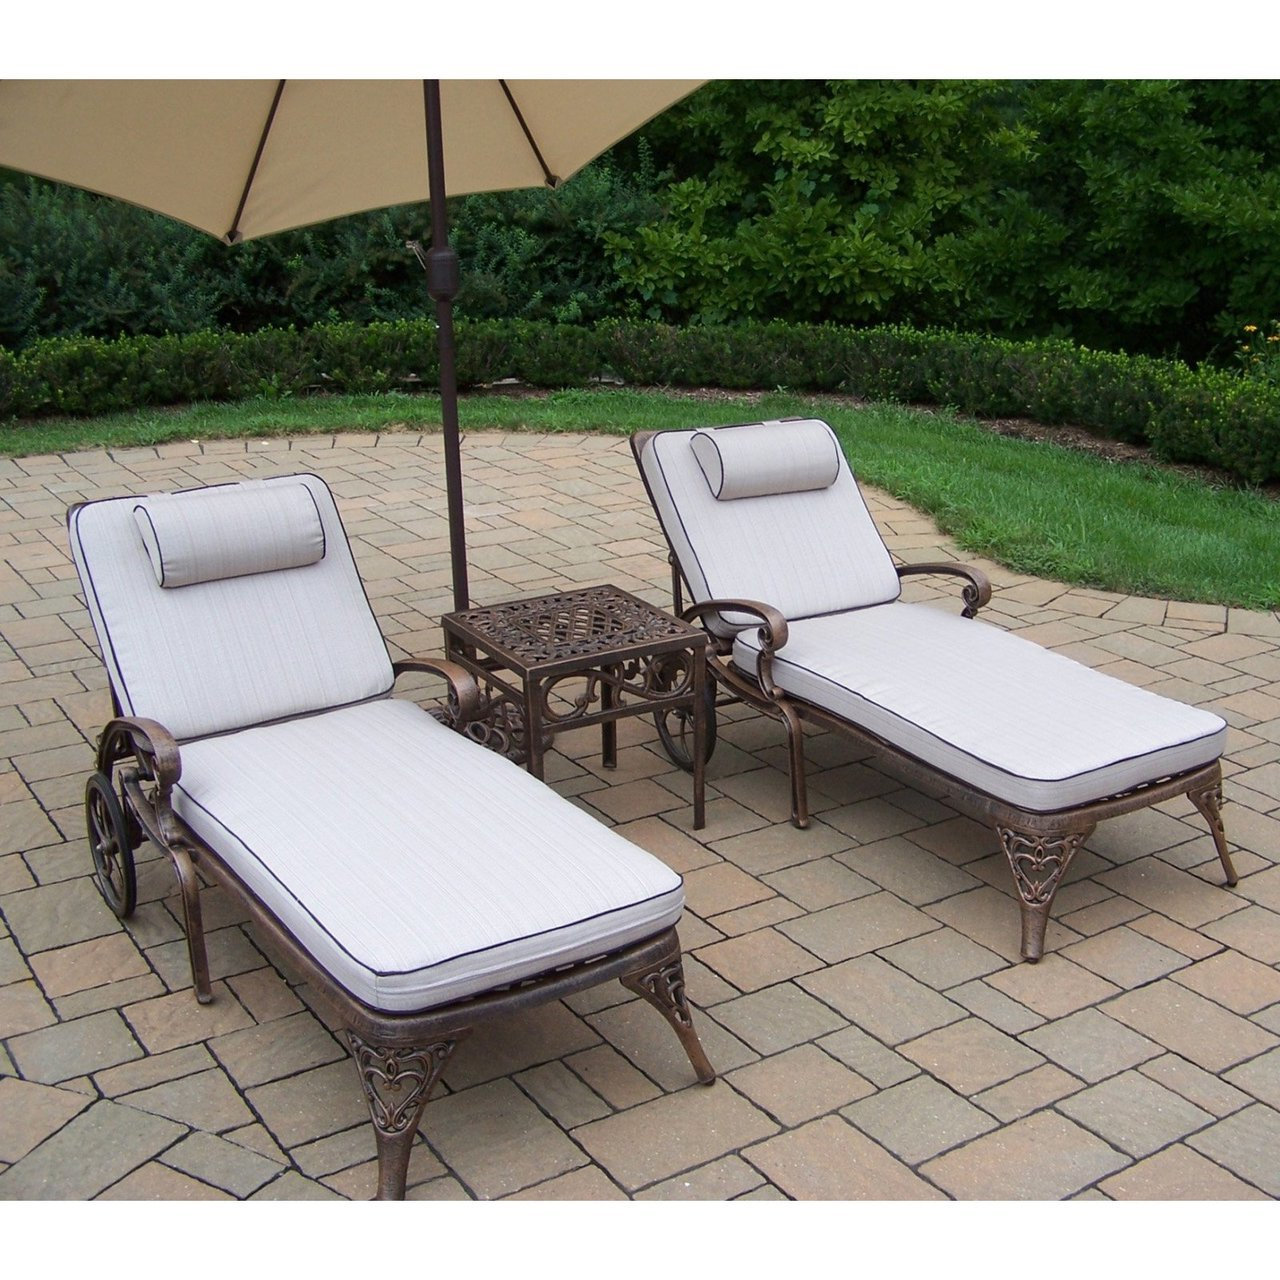 Well Known Details About Oakland Living Mississippi 3 Piece Outdoor Patio Chaise Lounge Set With Cushions Inside 3 Piece Patio Lounger Sets (View 21 of 25)